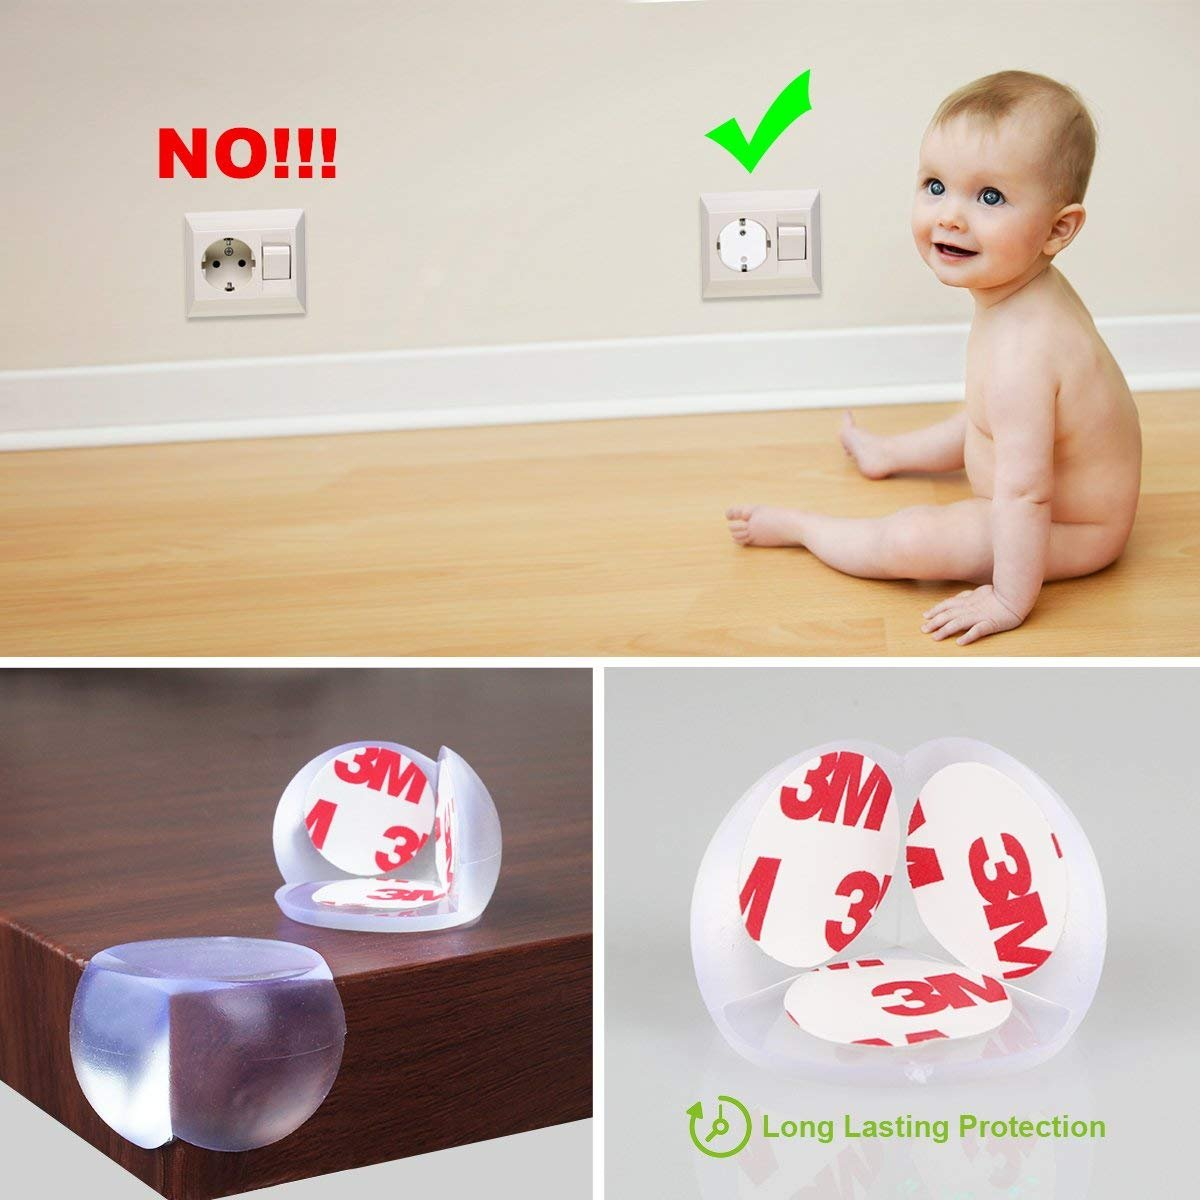 Baby Safety Proofing Kits (56 Pack) 20Pcs Outlet Covers +6Pcs Child Safety Proofing Cabinet Locks+ 20Pcs Corner Protector Edge Guard+ 6Pcs Children Cupboard Locks + 4Pcs Kids Safety Foam Door Stoppers by HOMER (Image #4)